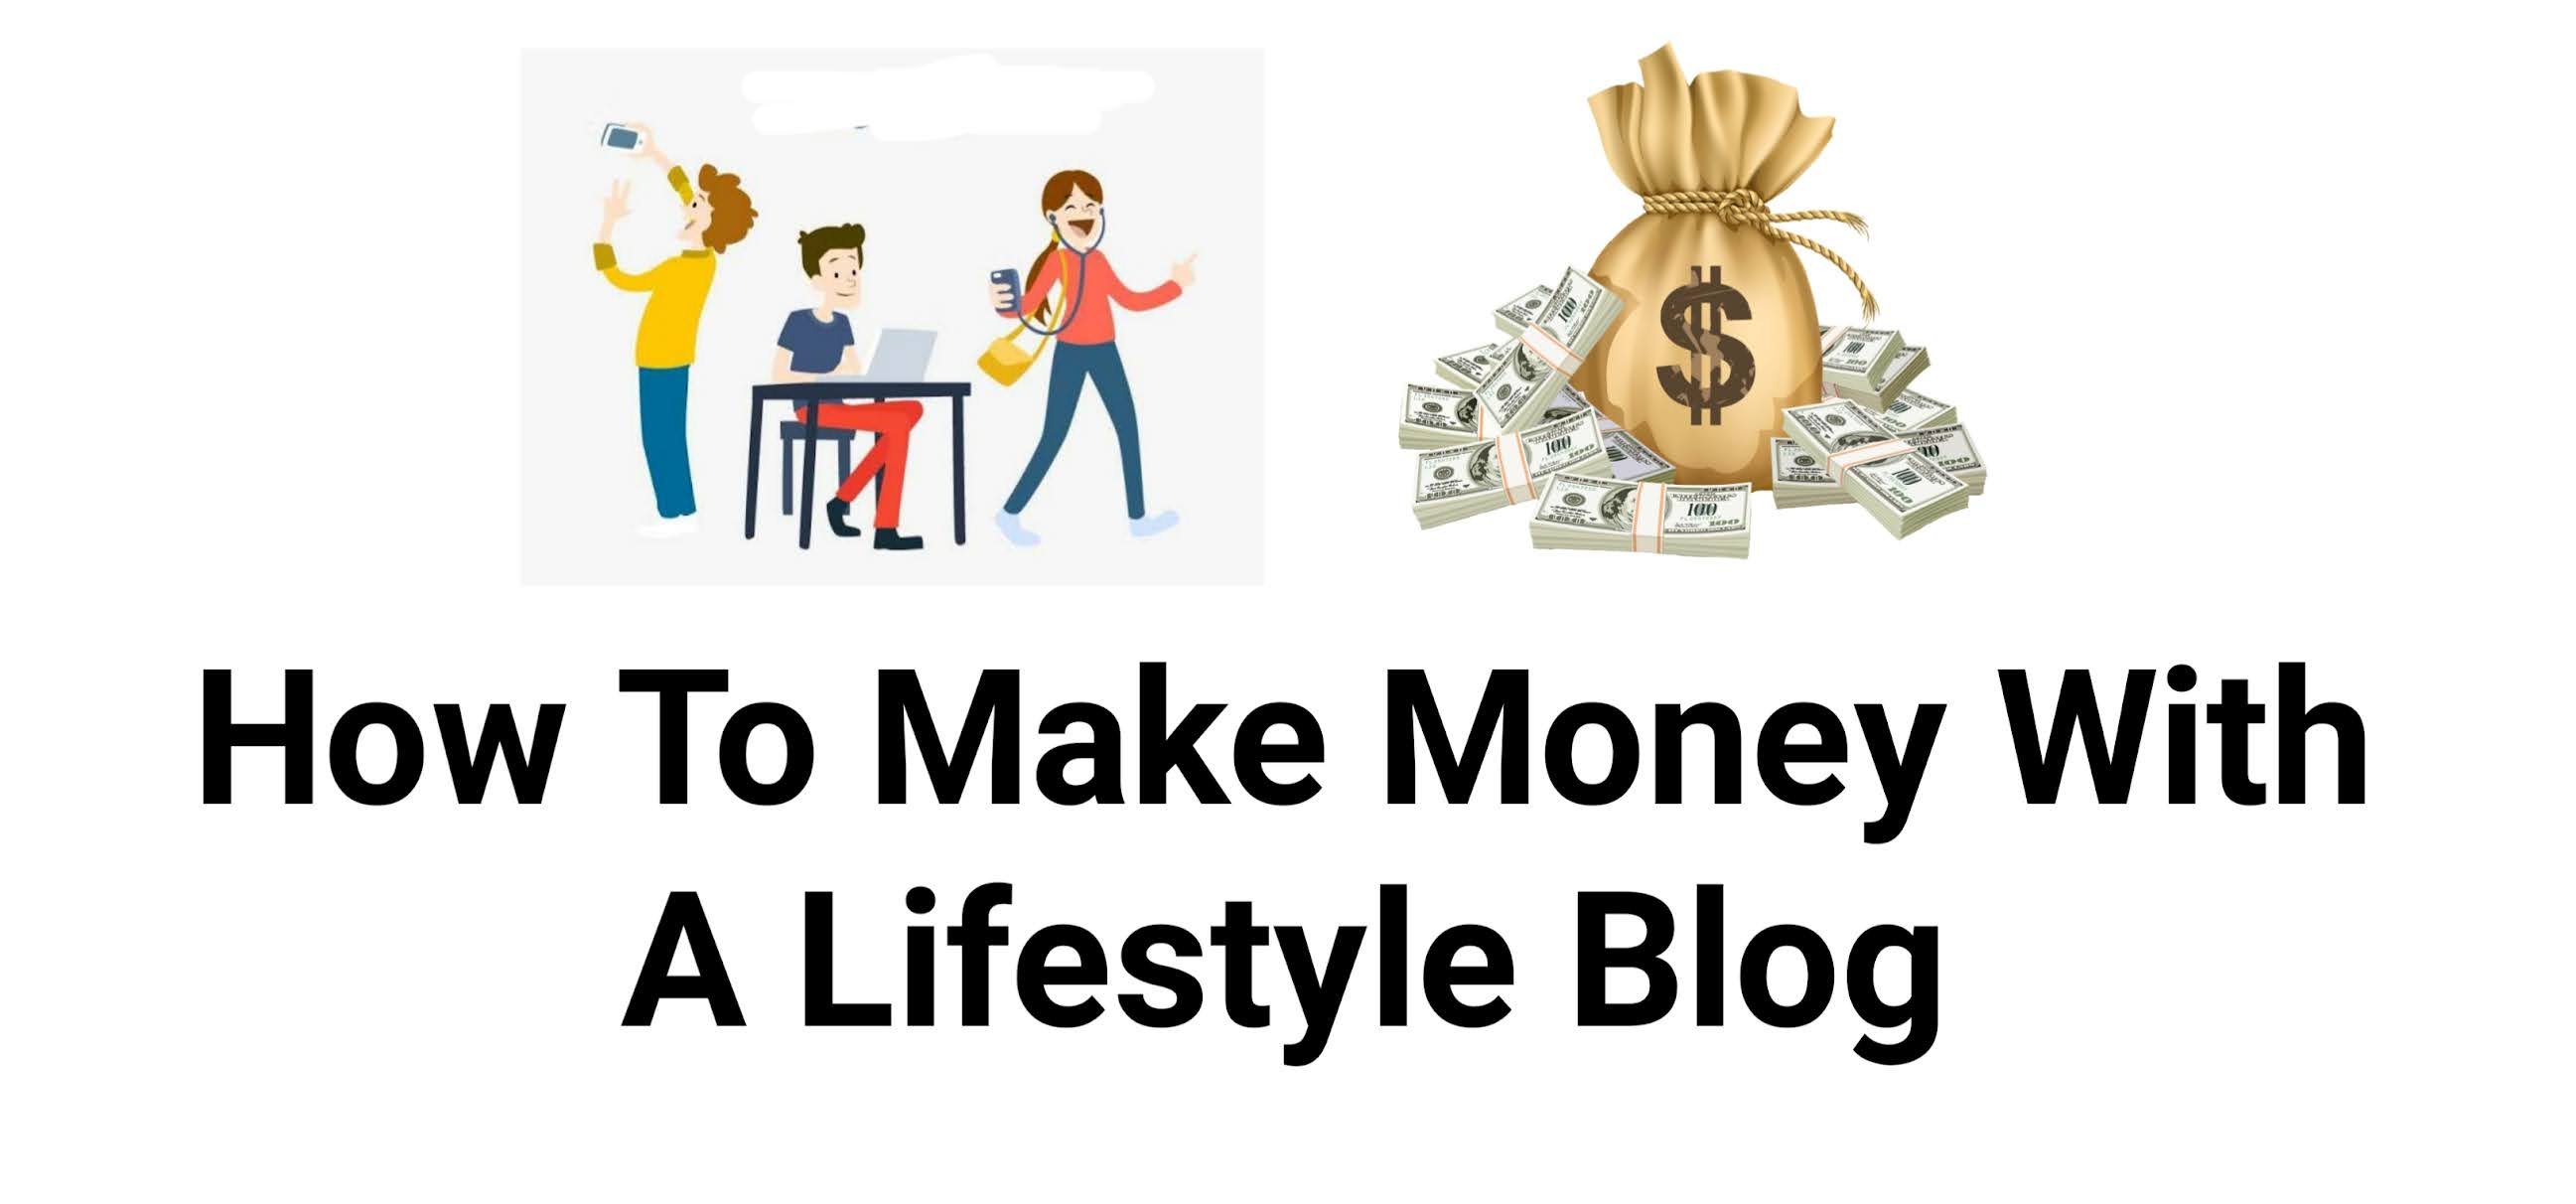 How To Make Money With A Lifestyle Blog